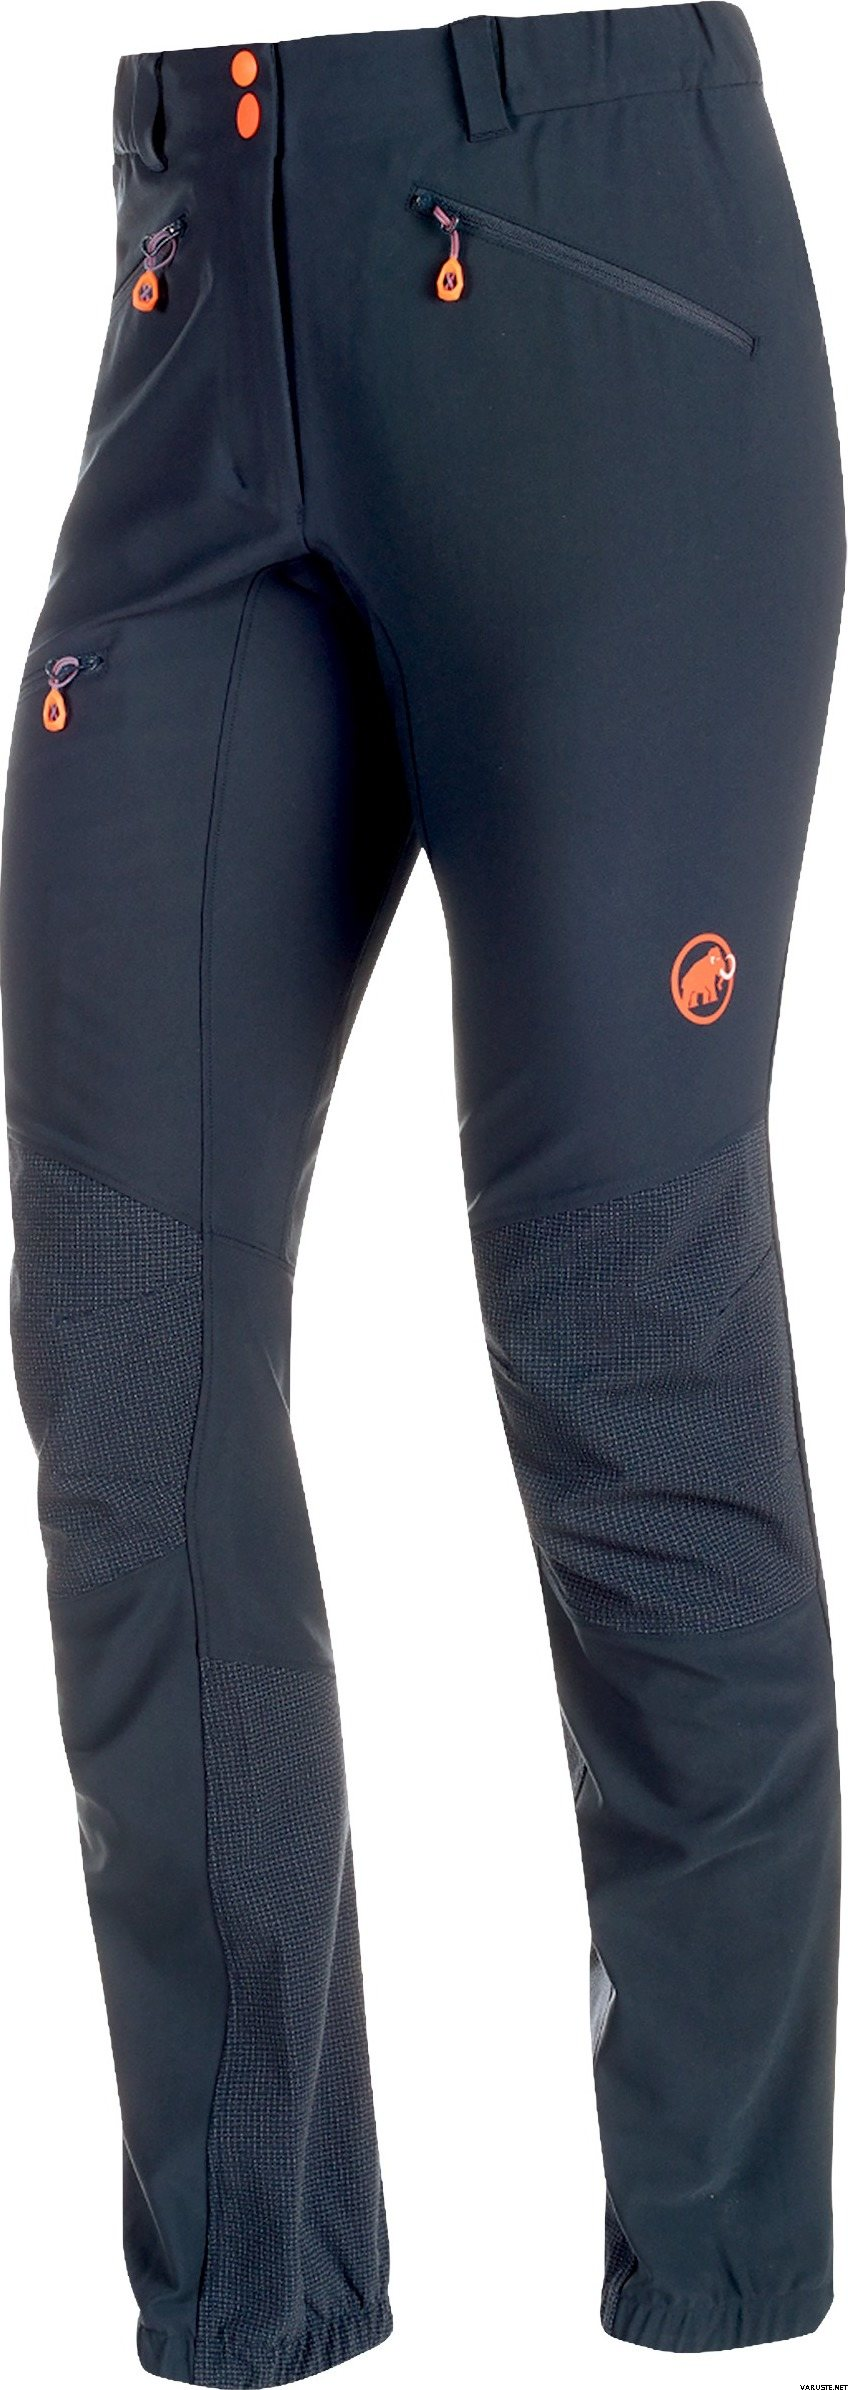 new specials outlet store sale sale retailer Mammut Eisfeld Advanced SO Pants Women